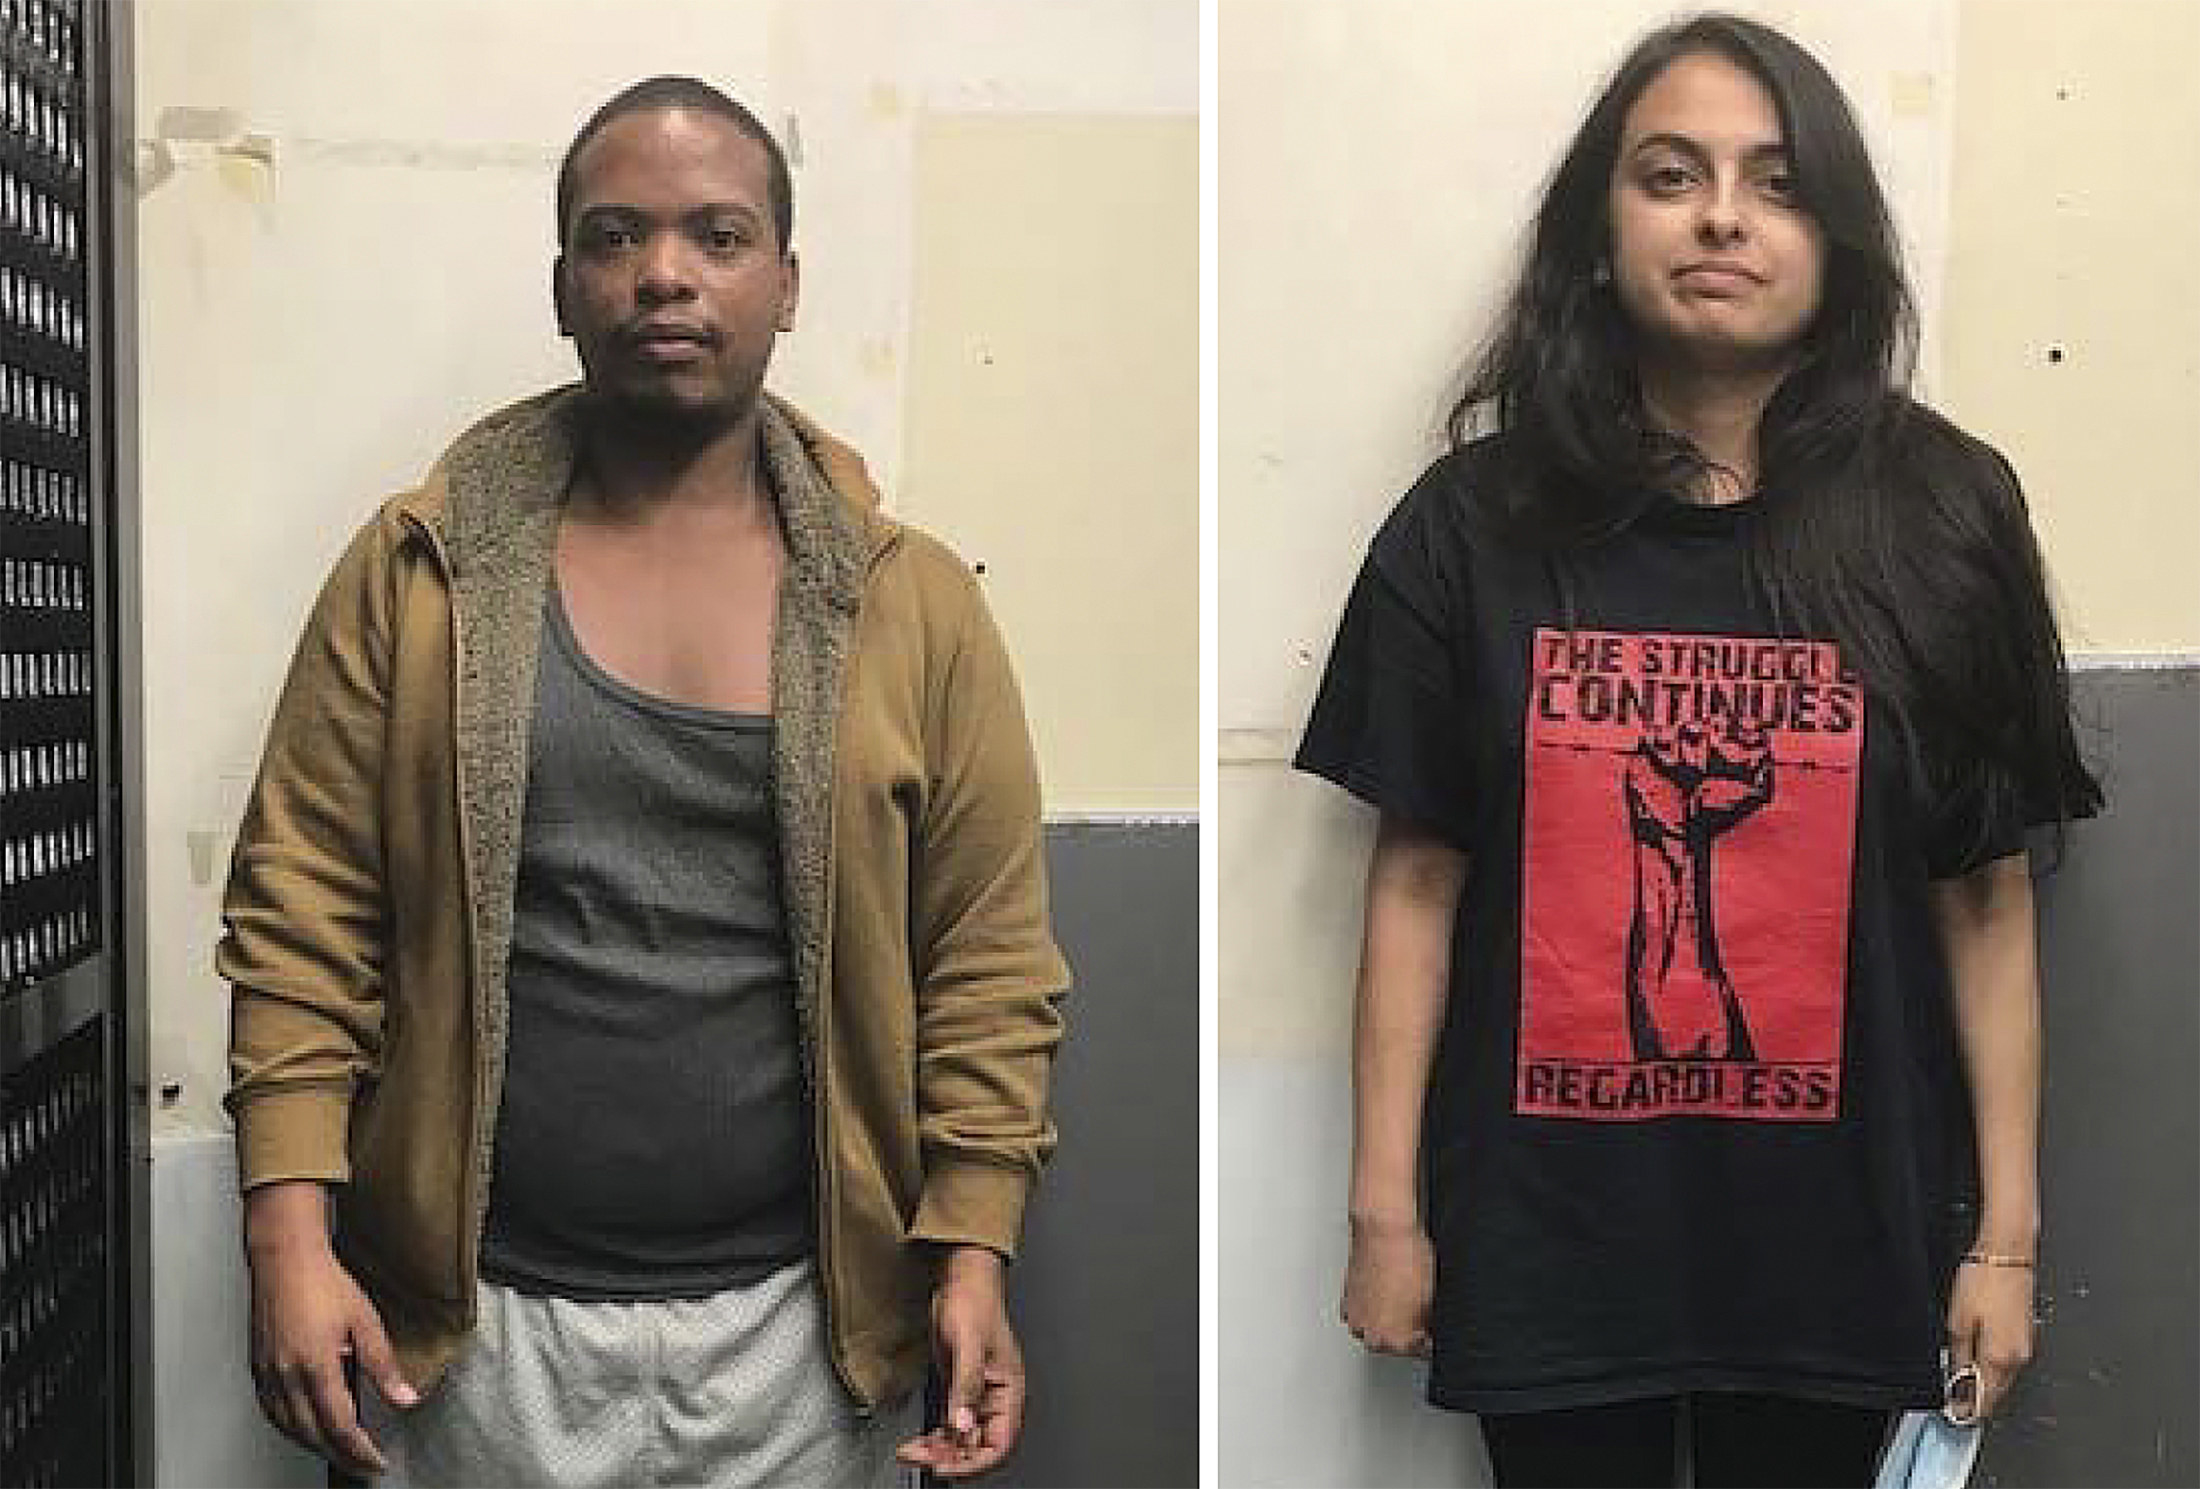 """Bookings photos of Mattis and Rahman, who is wearing a T-shirt that says """"The struggle continues regardless"""" with a picture of a fist"""